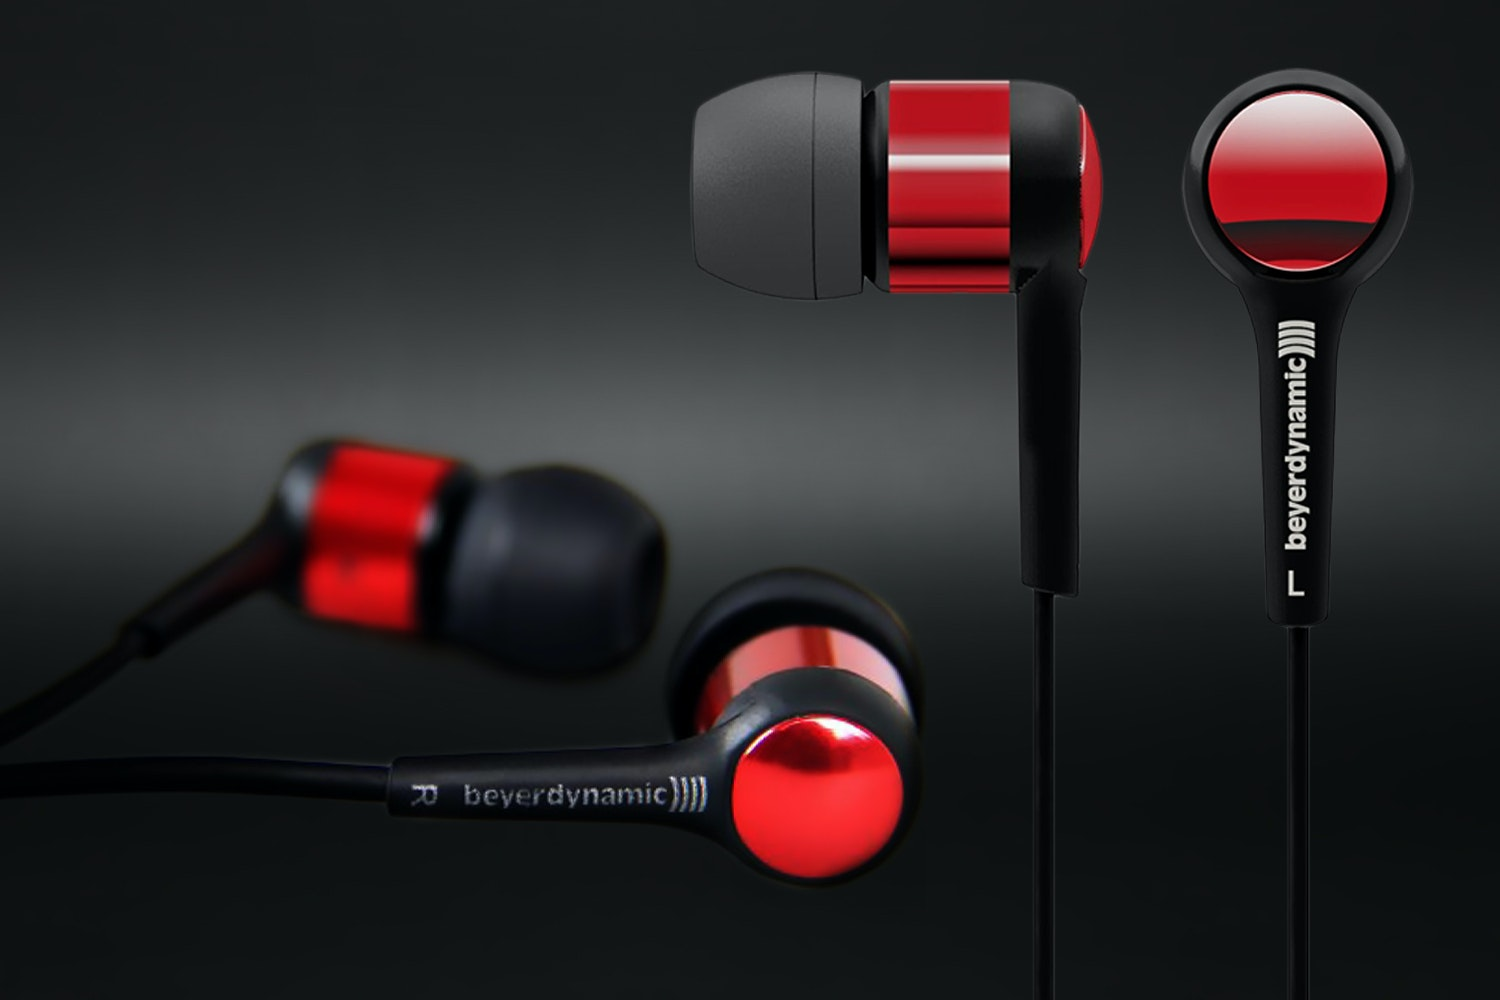 Beyerdynamic DTX 101 iE Earphones